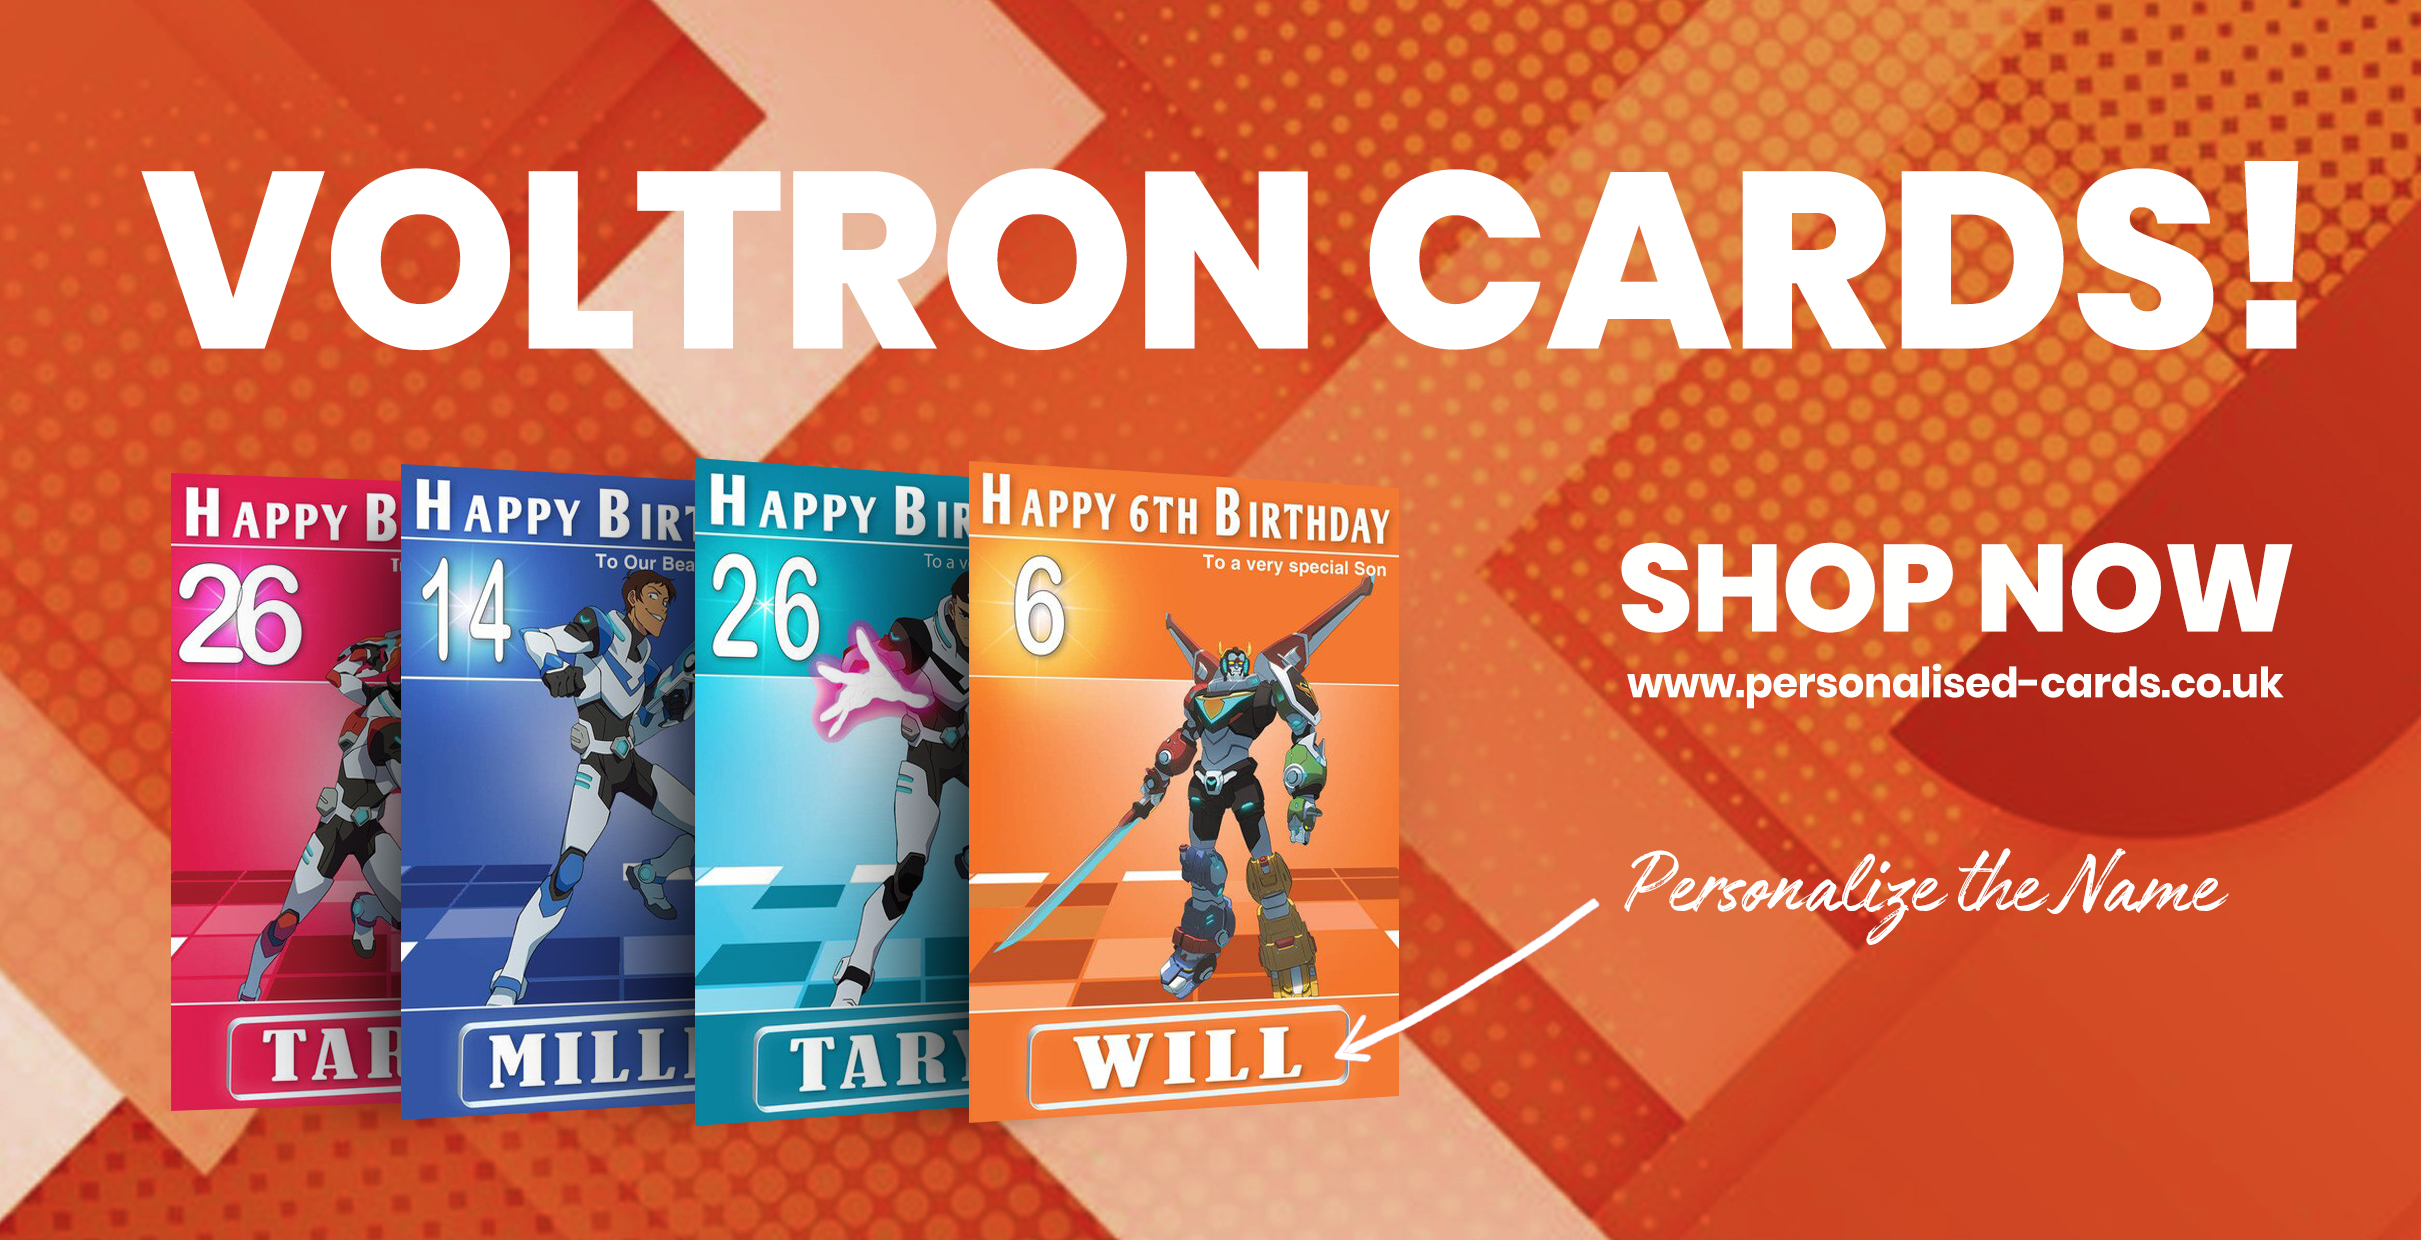 voltron-cards.jpg